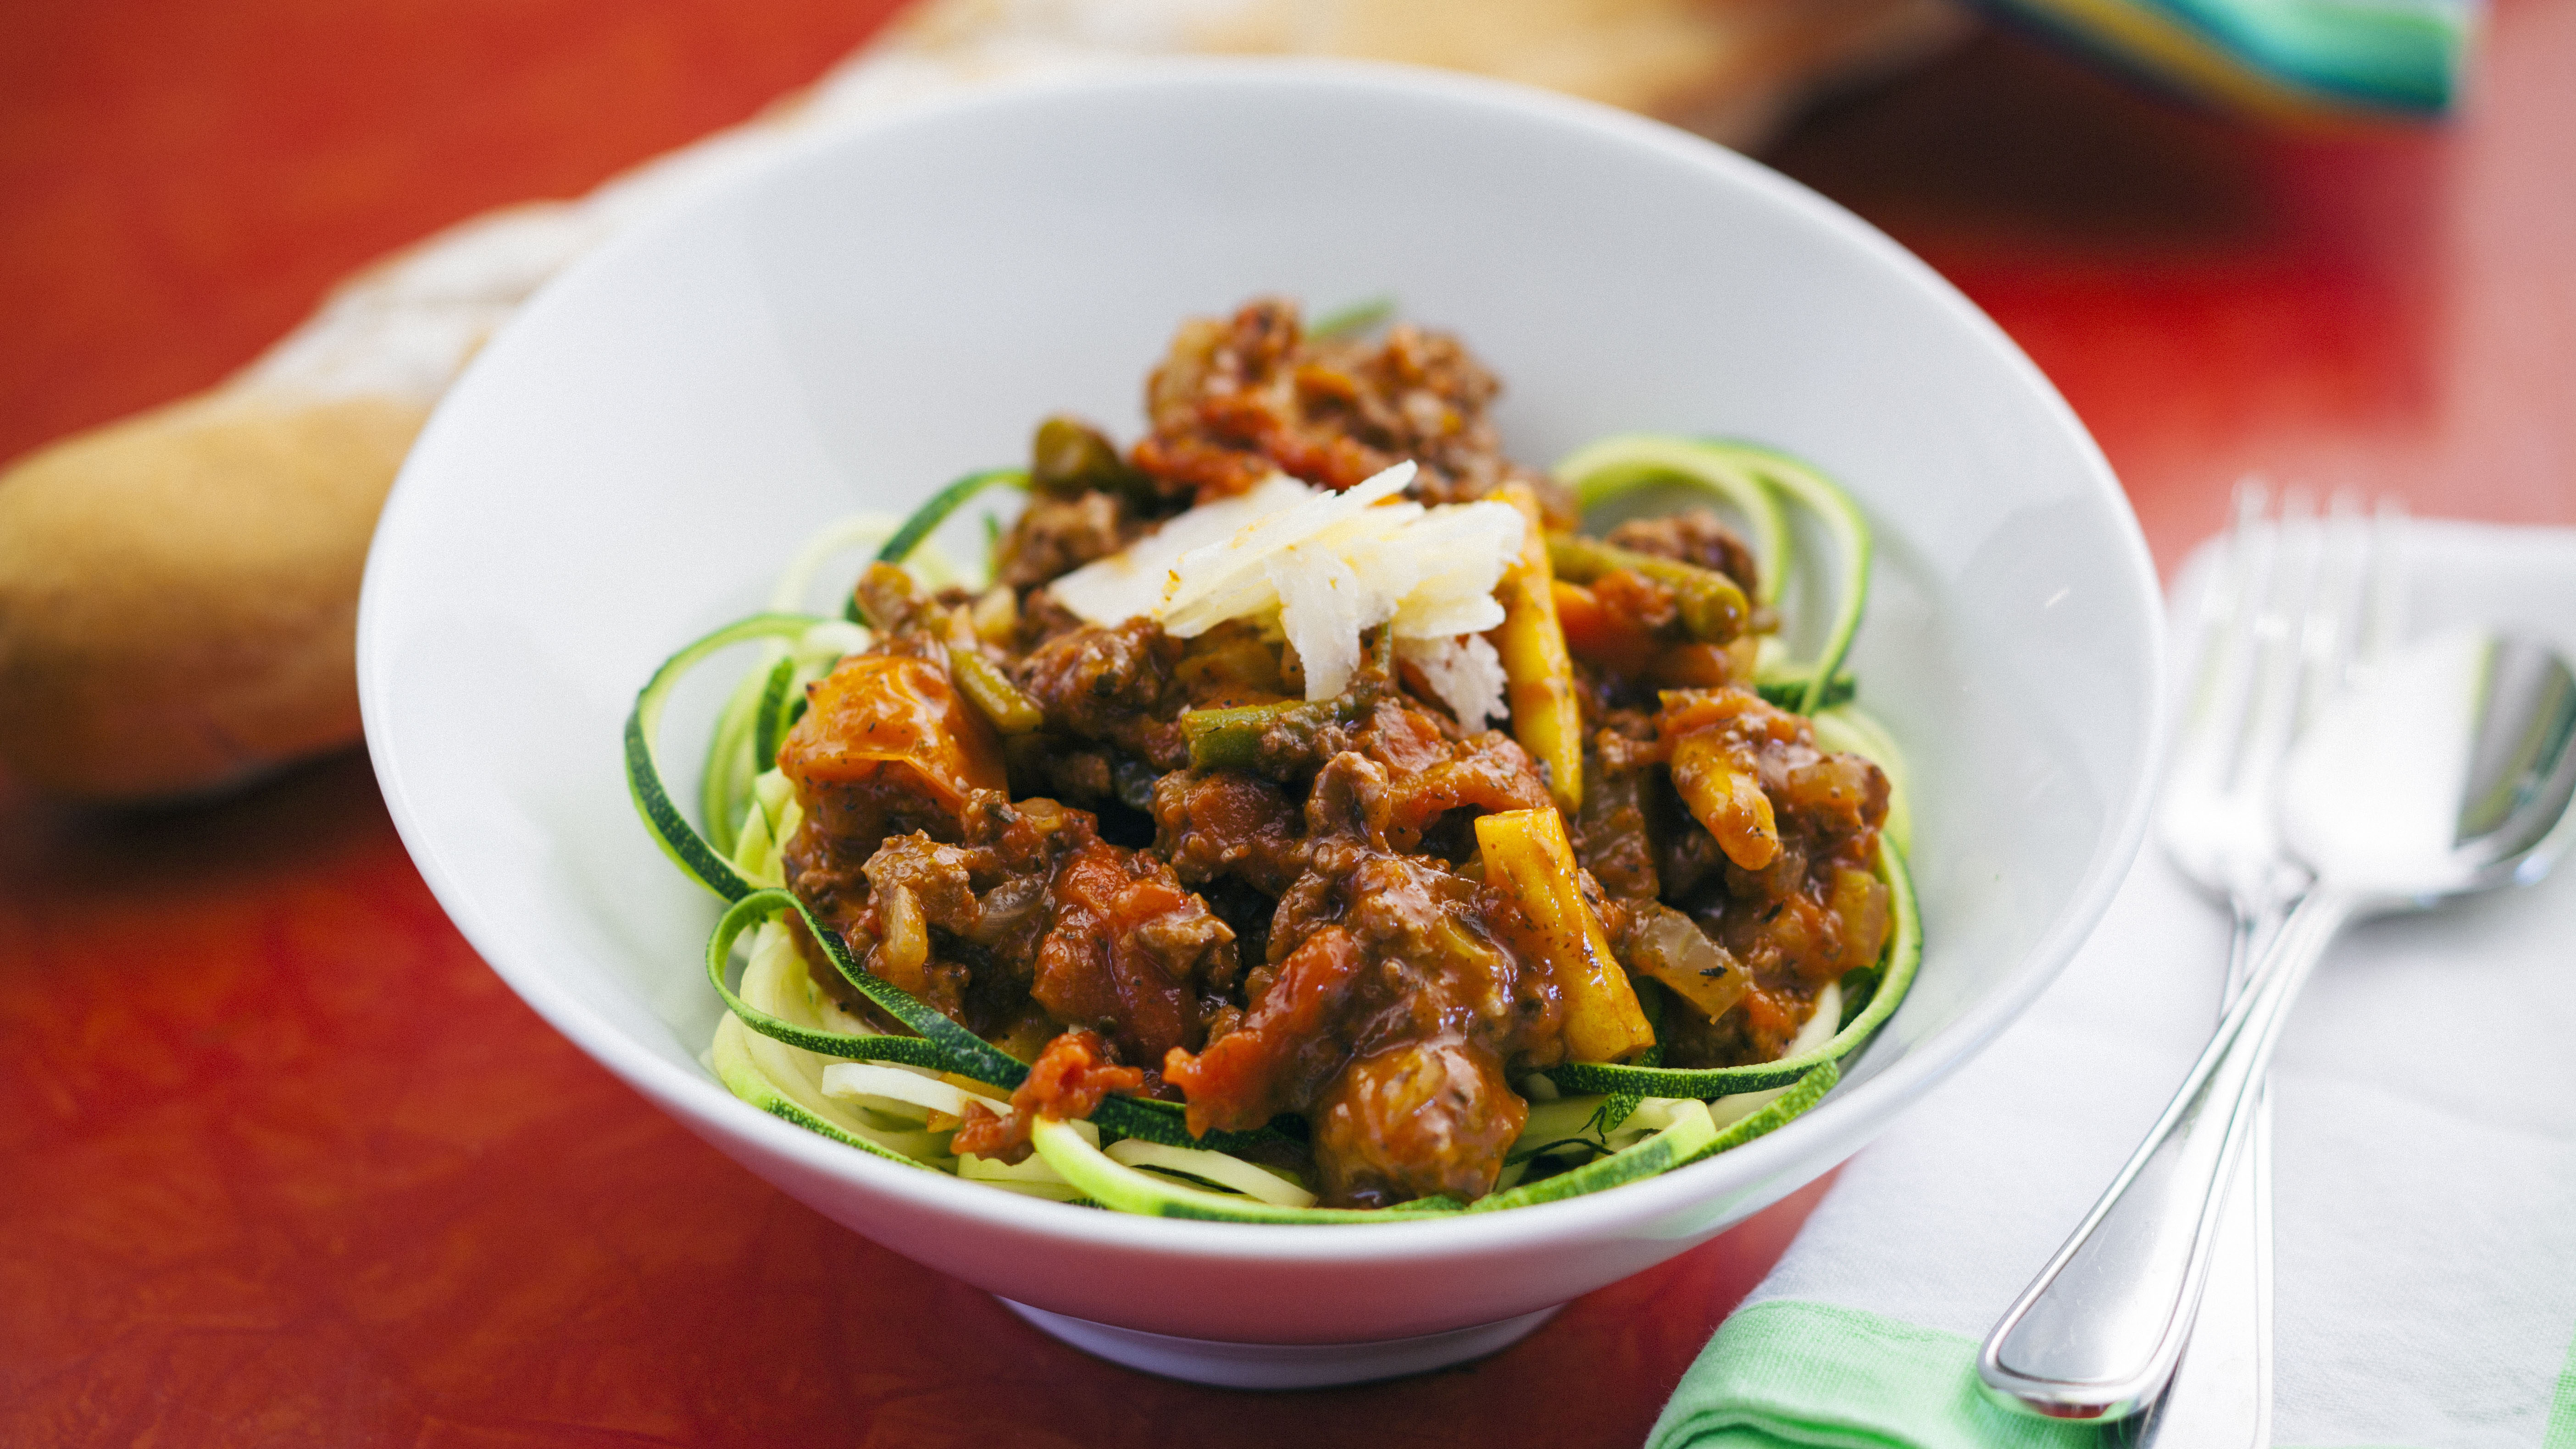 Country Magic Vegetable Turkey Bolognaise over Zucchini Spirals by The Kilted Chef